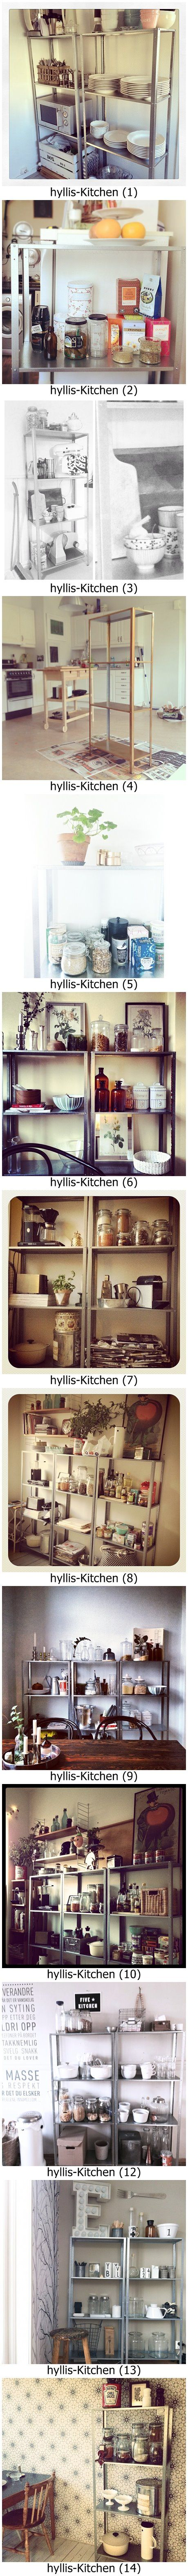 Ten Ikea hyllis kitchens. Ikea Hyllis shelves priced at $14.99 or £ 9 is an hackers dream!! Hack away!! # Furniture makeover # kitchen # industrial shelf